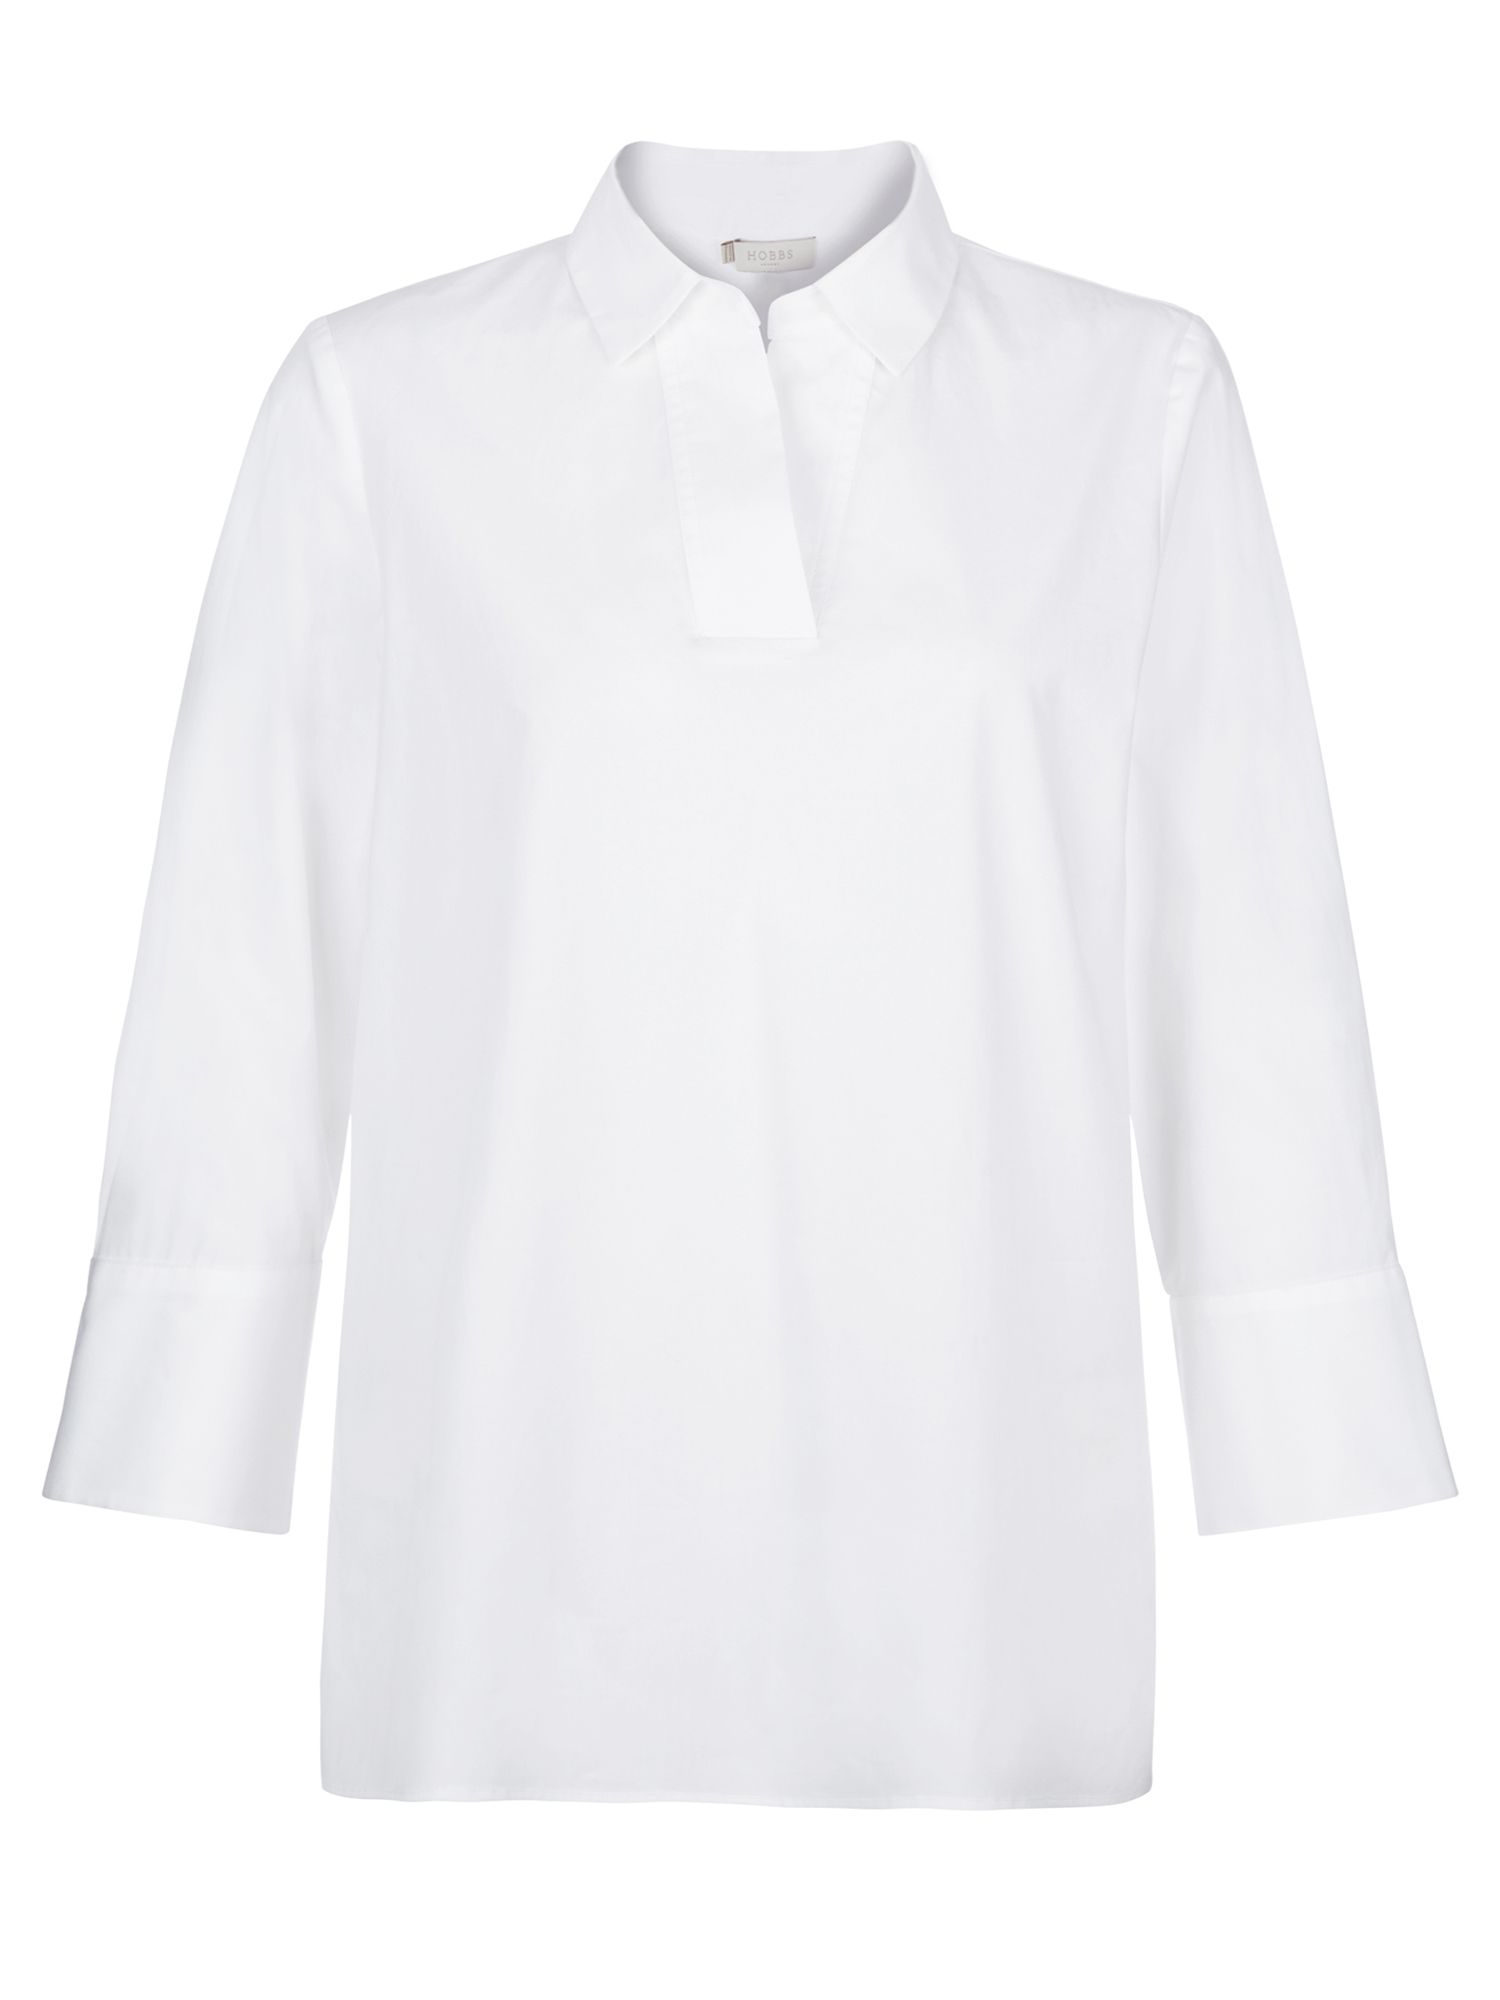 Hobbs Cathy Shirt, White